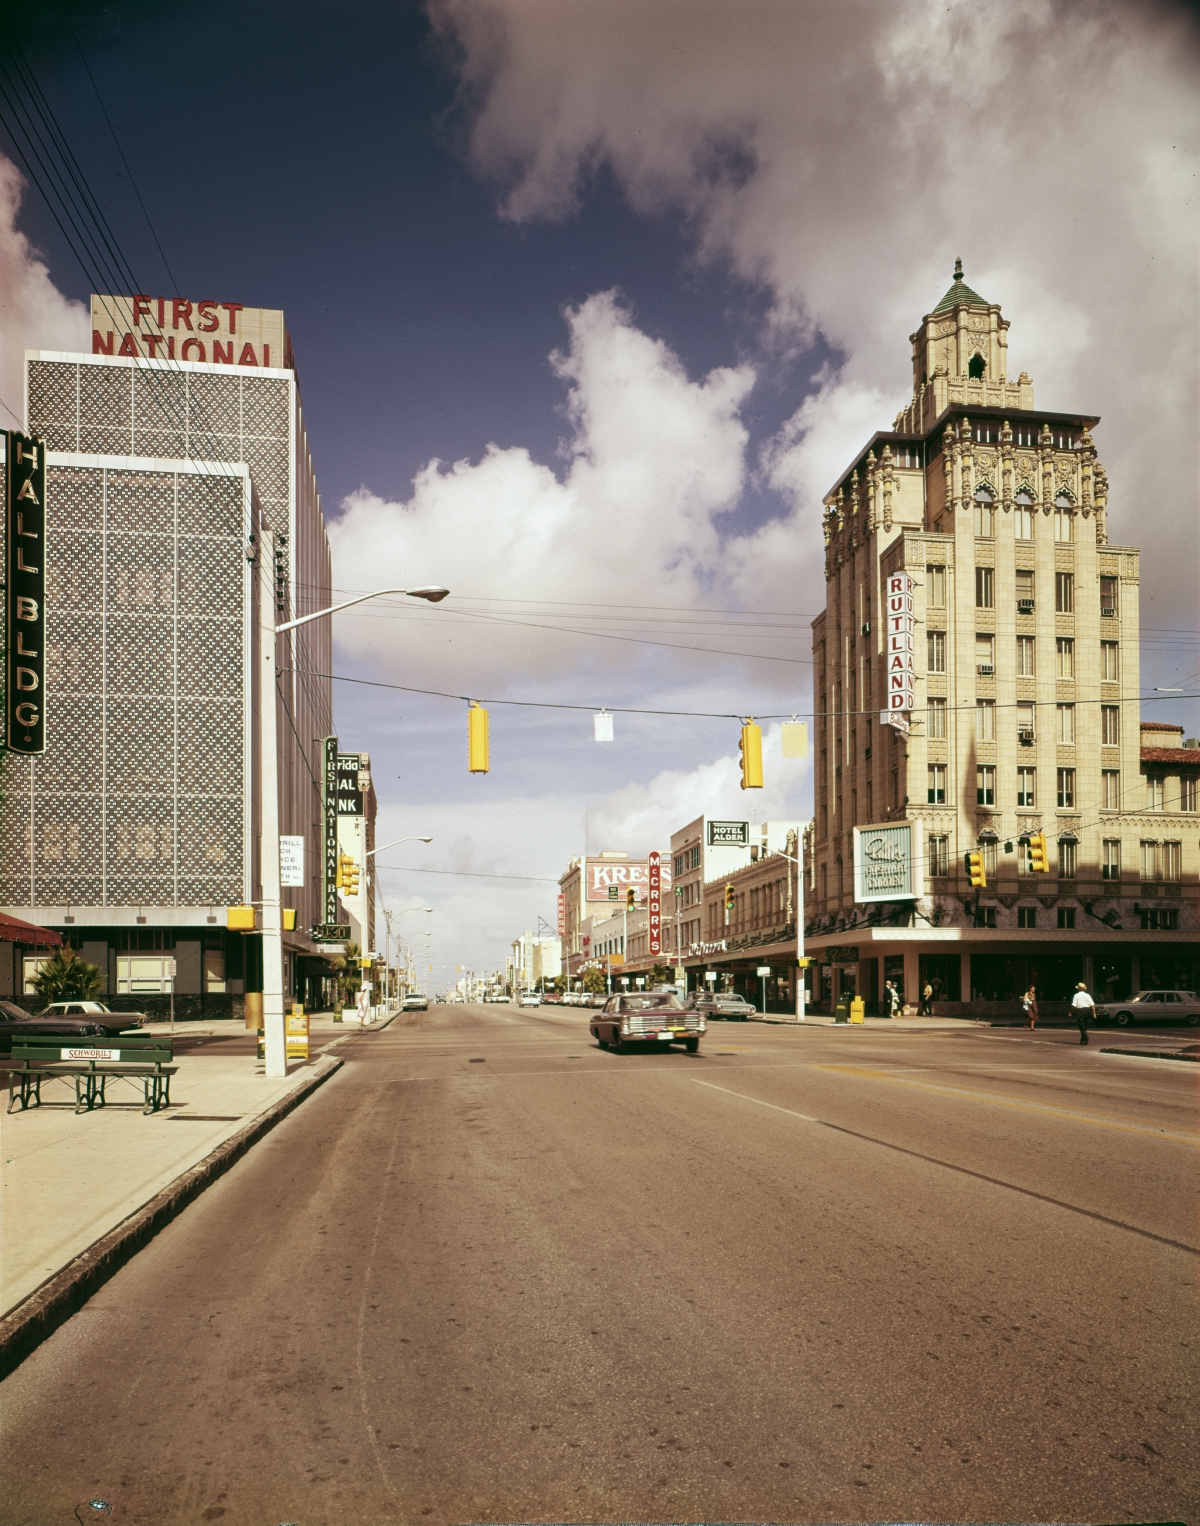 Looking west on Central Ave. in downtown Saint Petersburg.